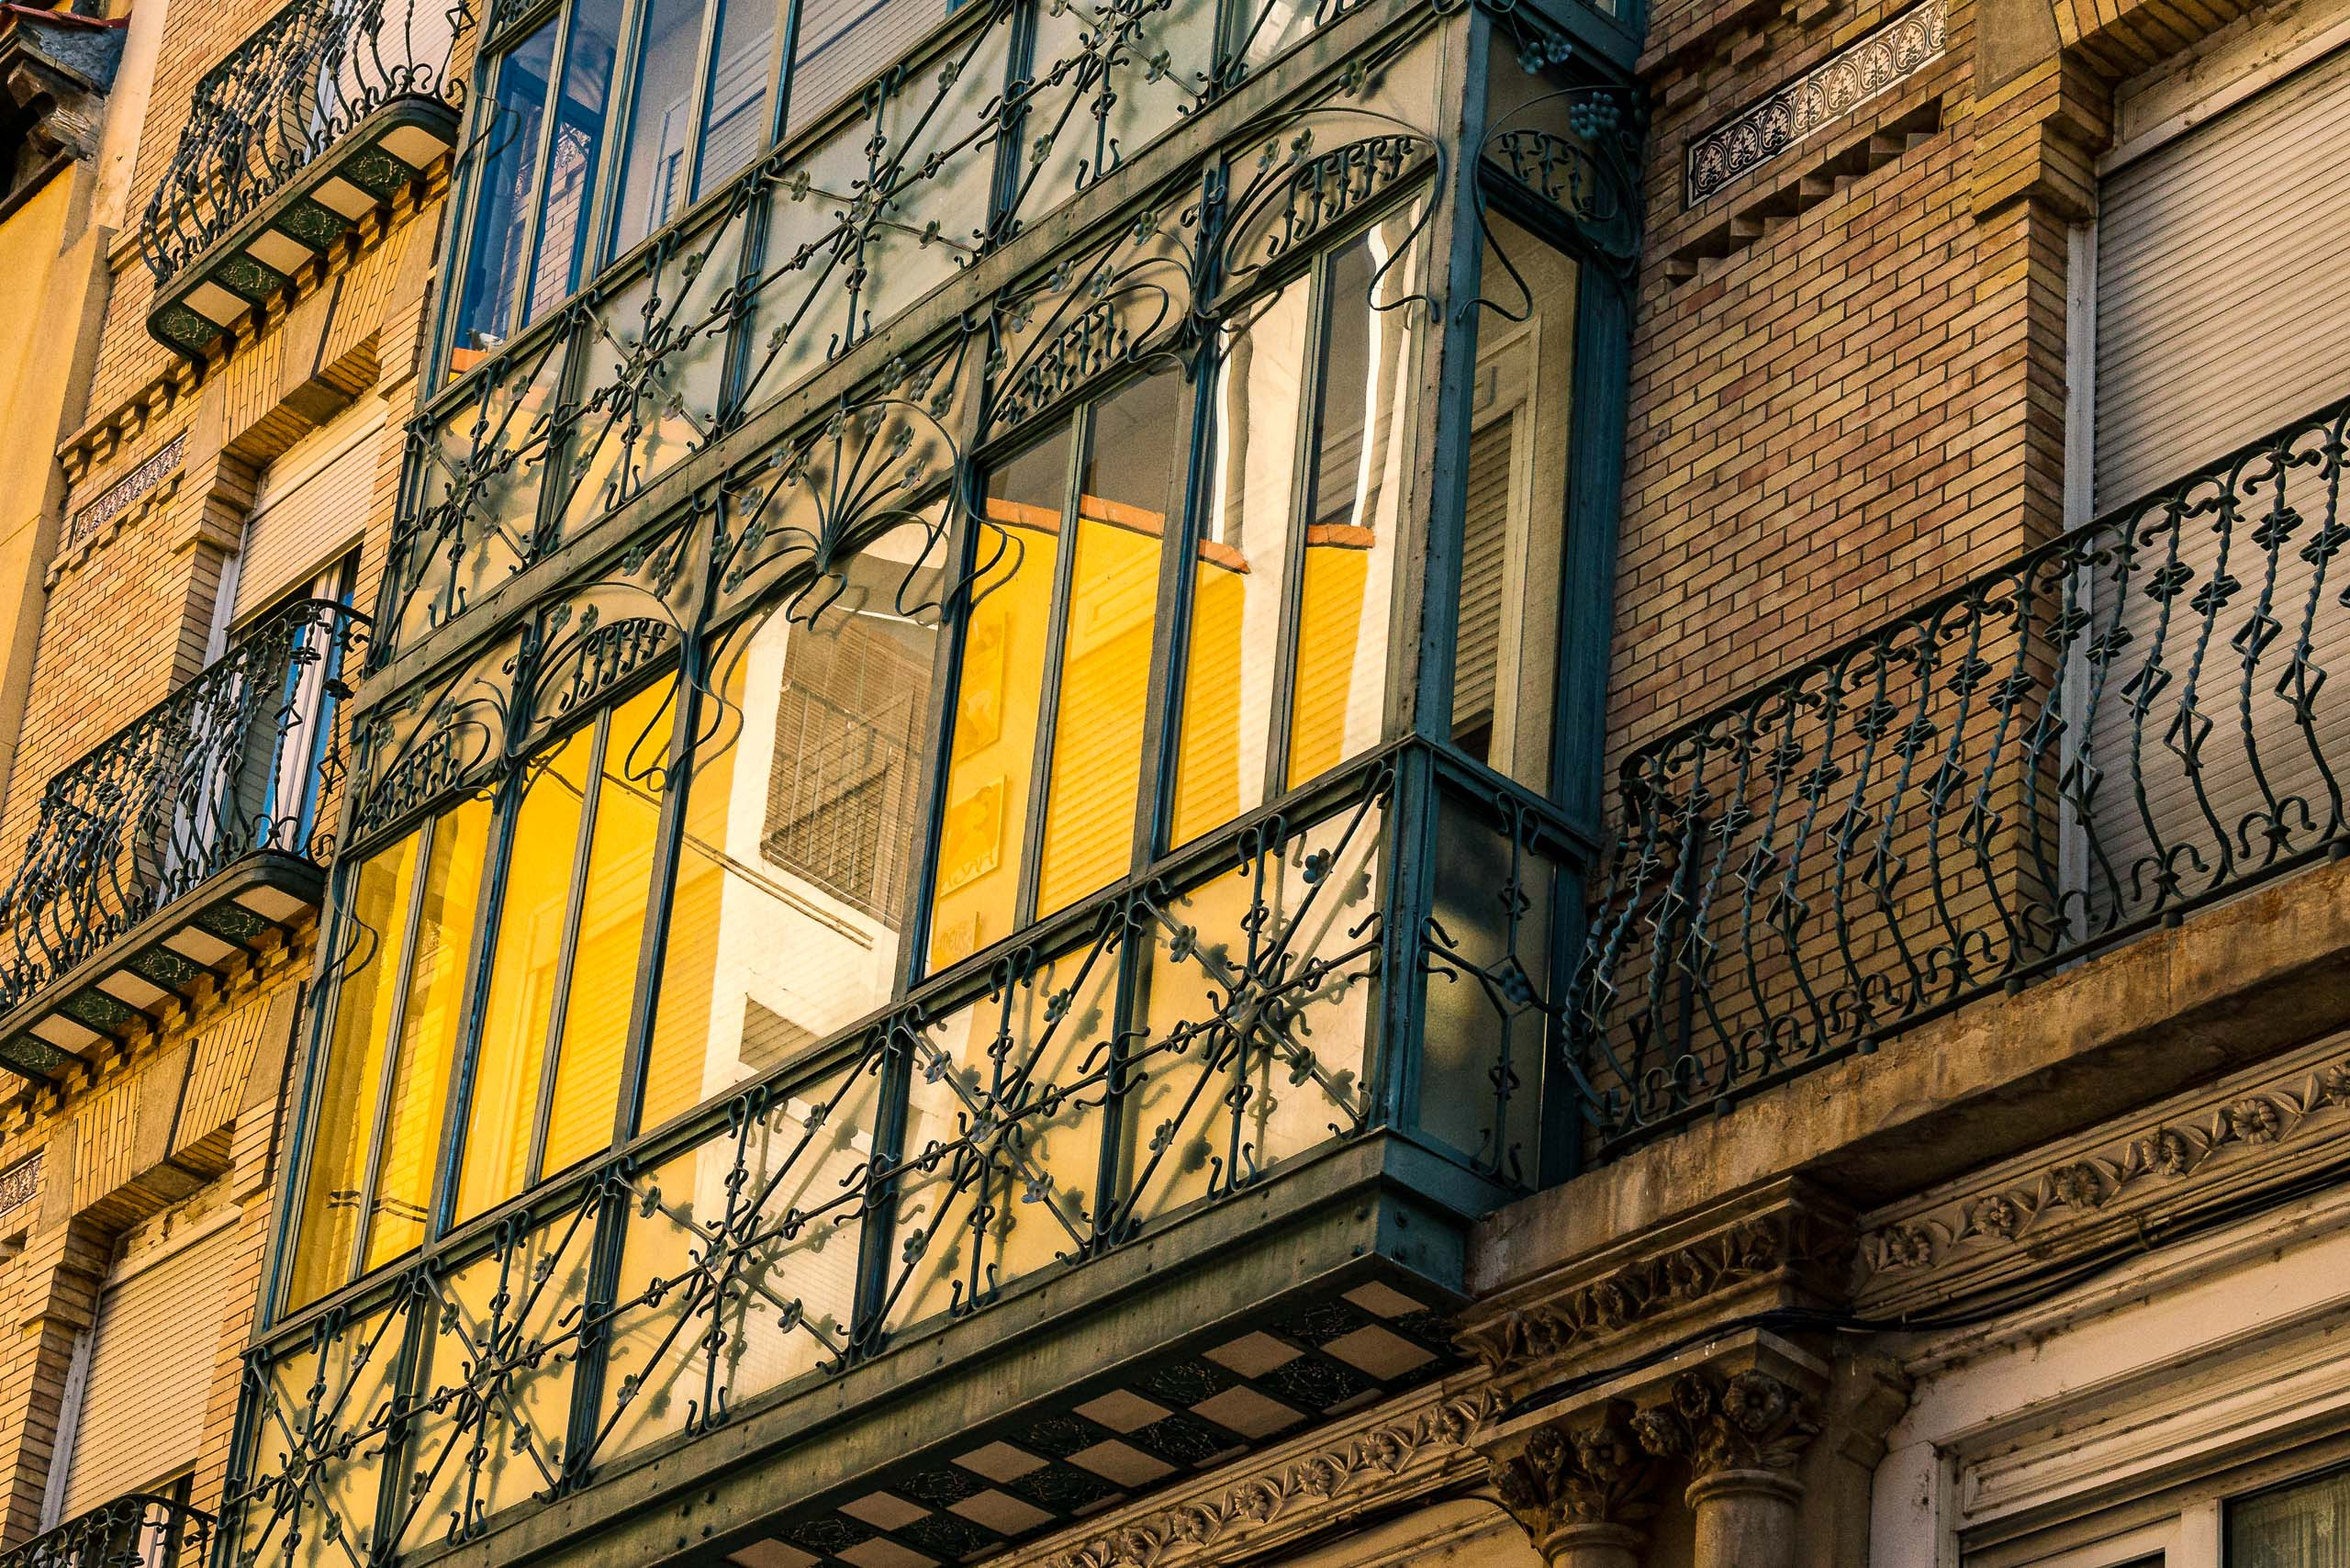 Travel and street photography of Zaragoza, Aragon, Spain made by New York photographer Mary Catherine Messner (mcmessner).